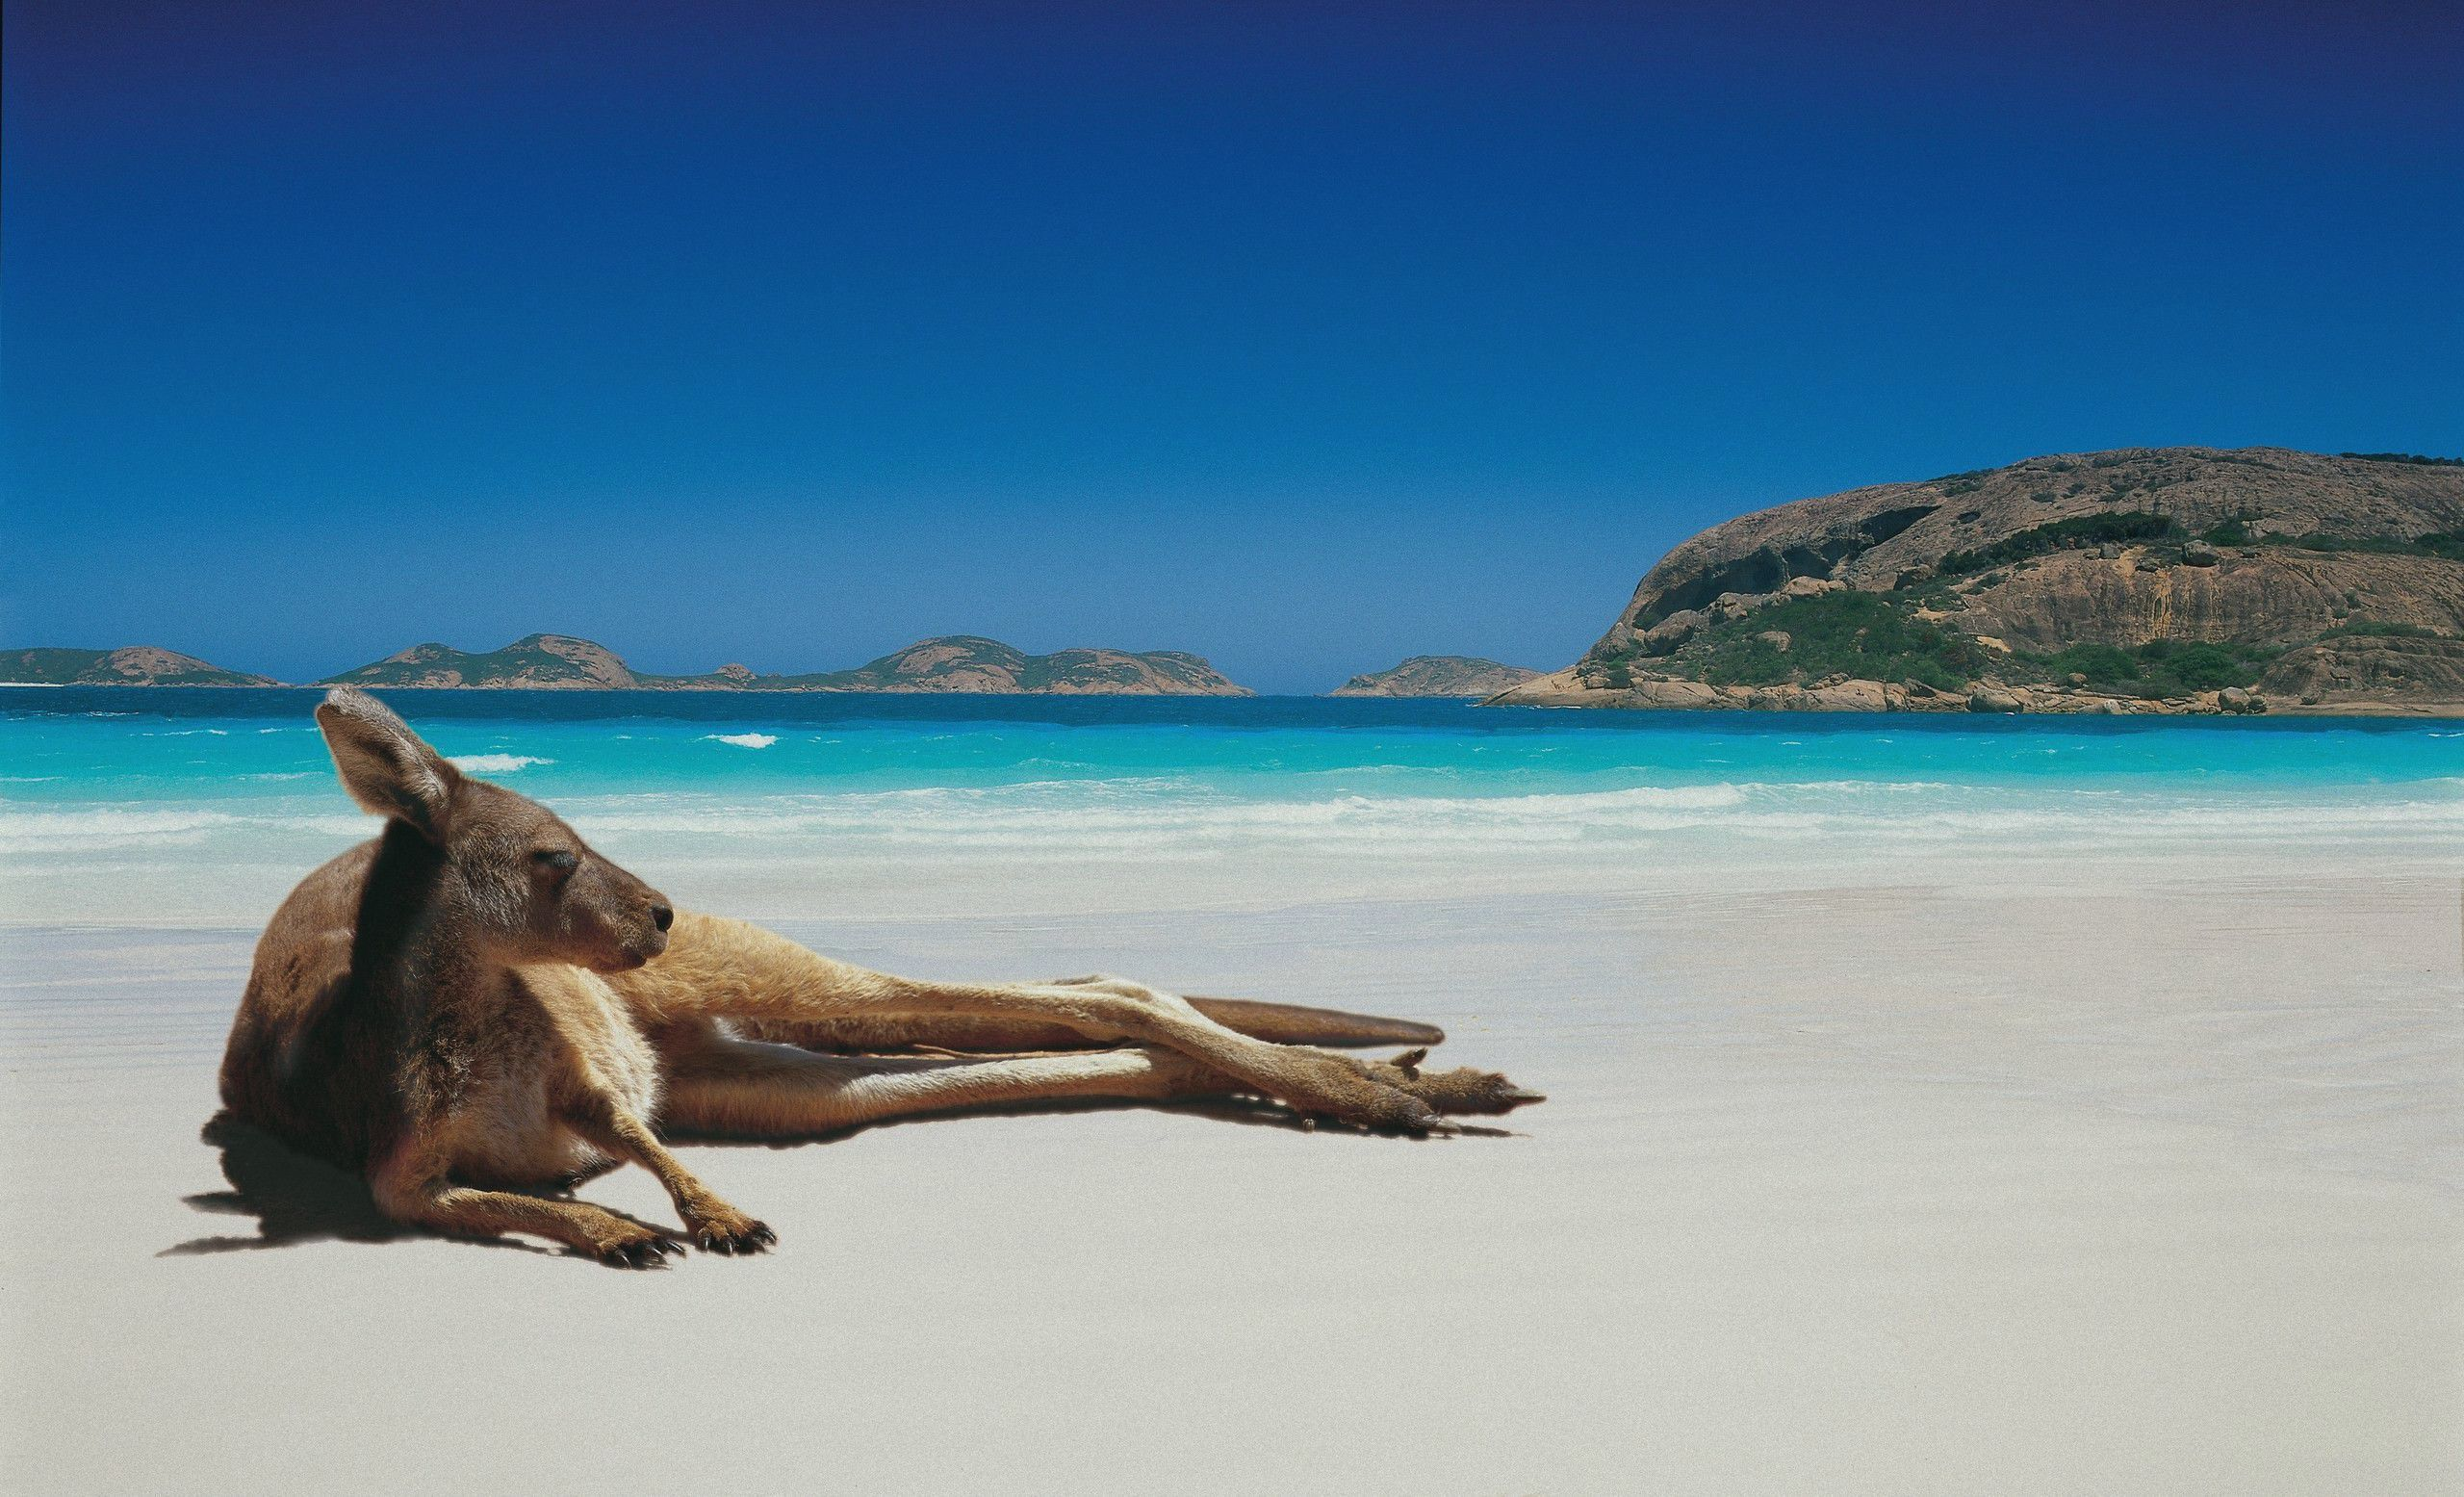 Australia Wallpapers HD